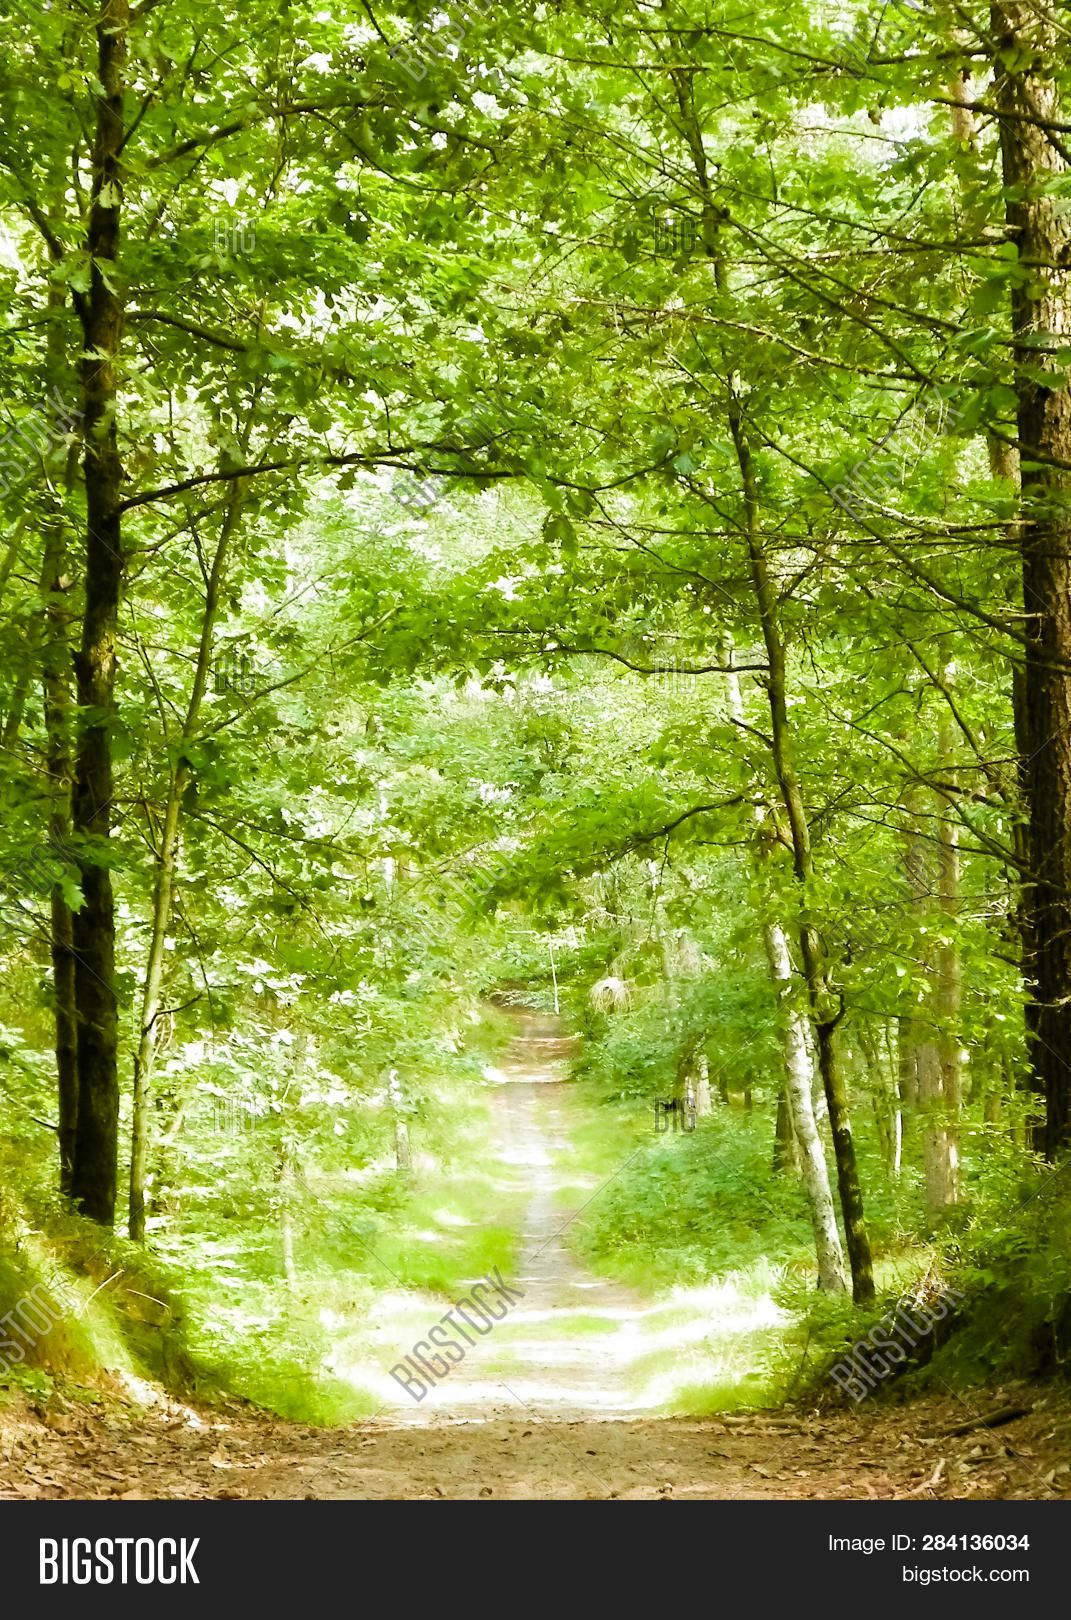 Green Forest In Sunny Day Nature Naturebeauty Naturephotography Best Nature Images Nature Photos Nature Photography